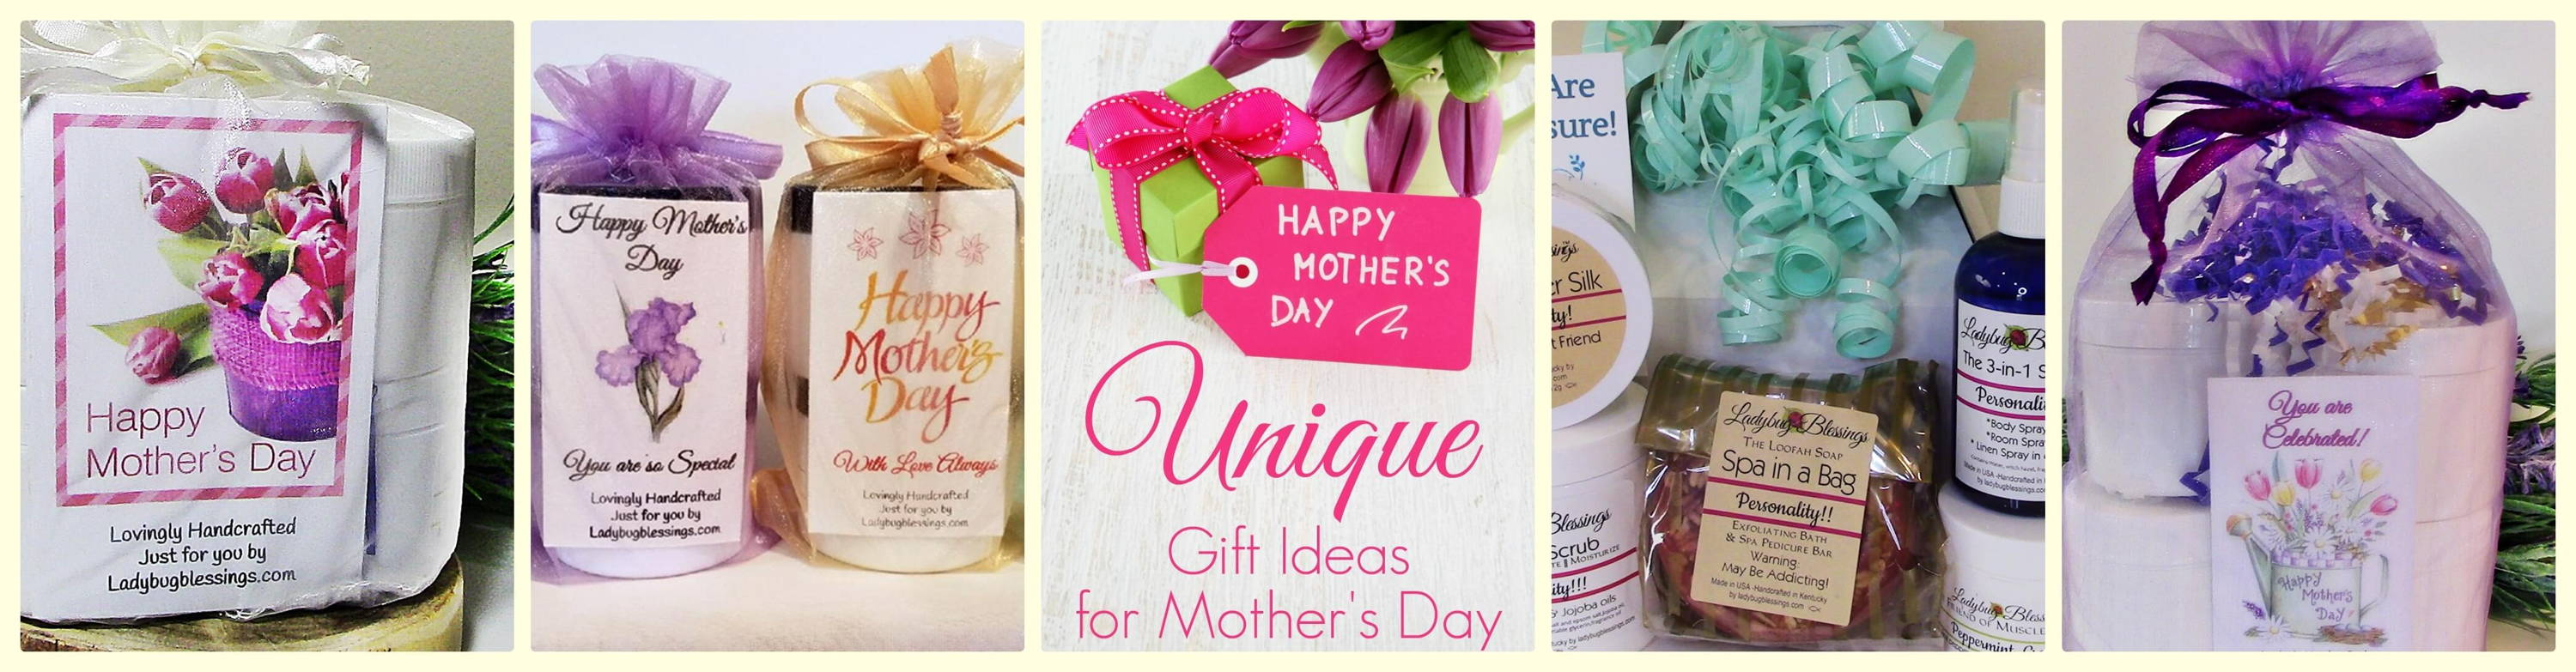 Mother's Day Fundraiser, mother's day fundraising,Mother's Day gift fundraiser, mother's day fundraising idea, mothers day fundraiser gift, fundraising mother's day gift, mother's day fundraiser for church, mother's day fundraiser for youth group